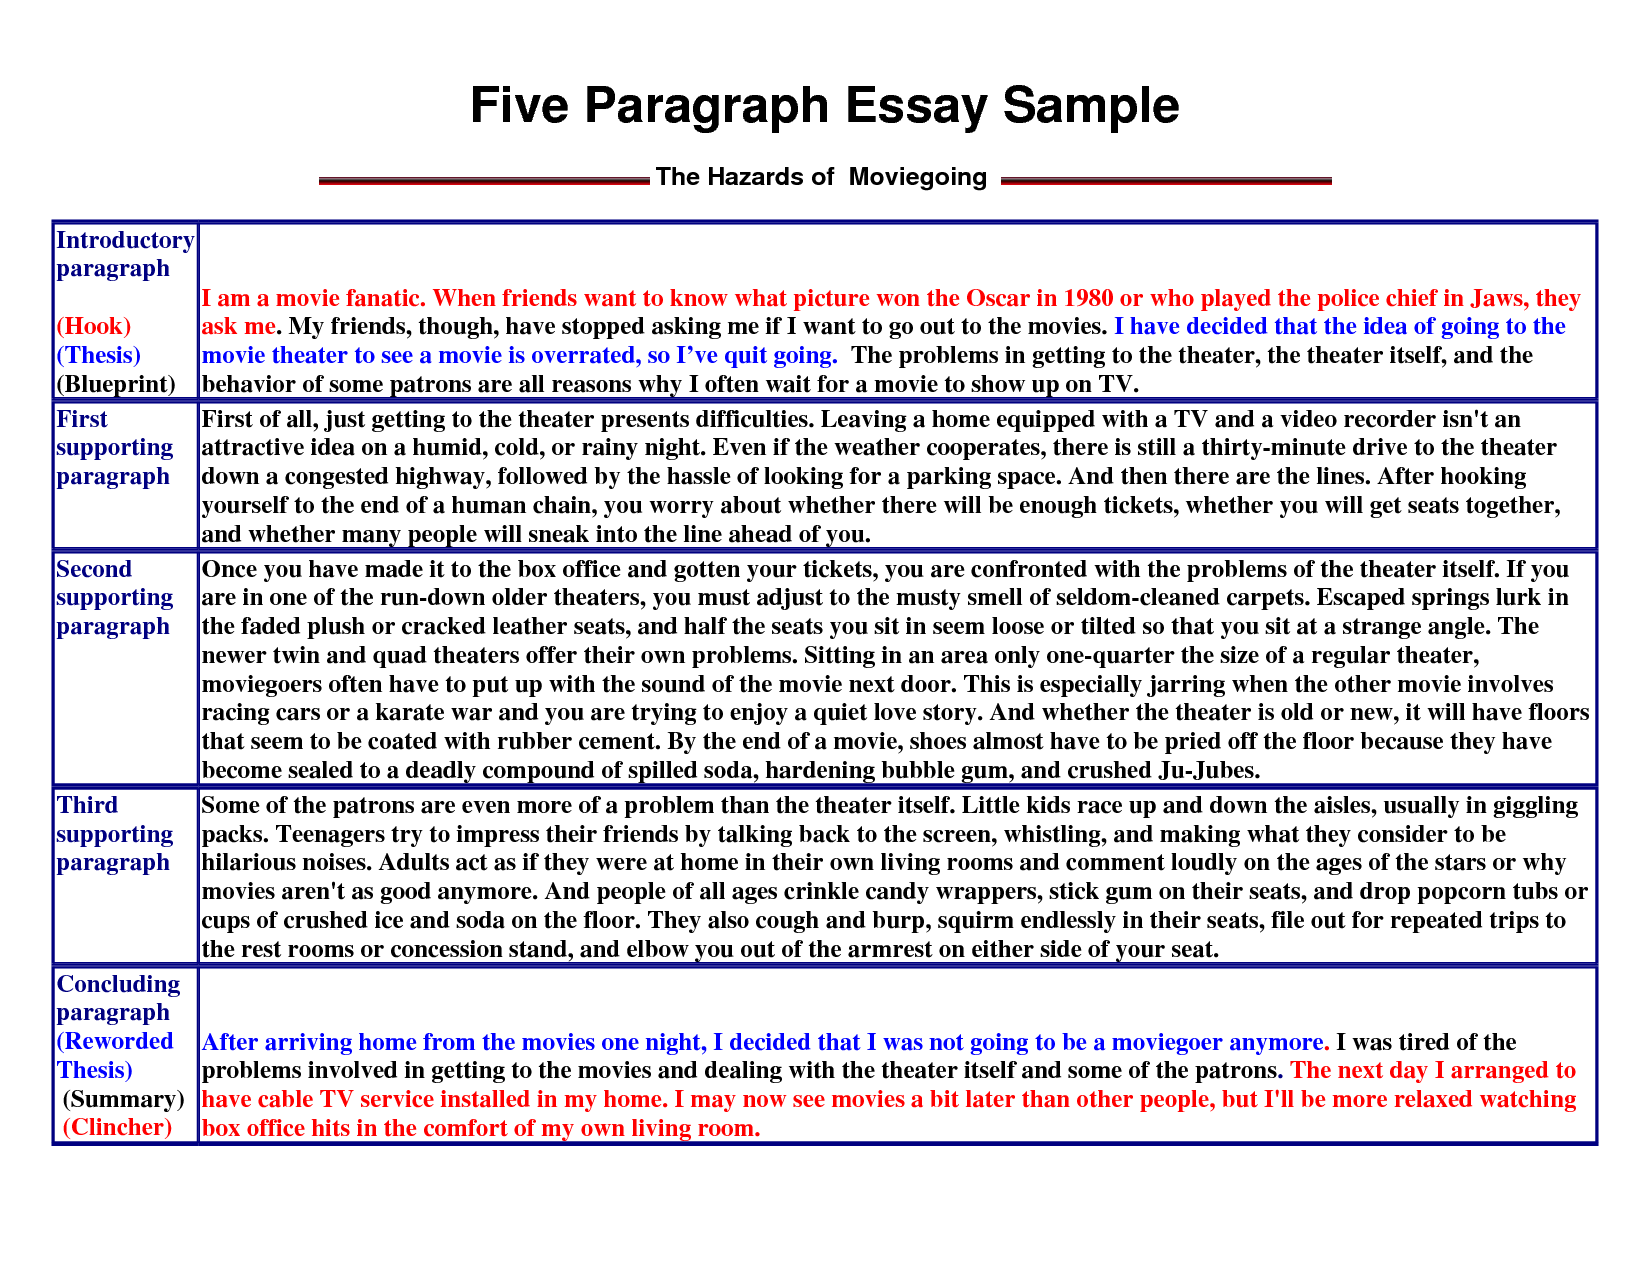 How to learn to write an good essay in the short time?